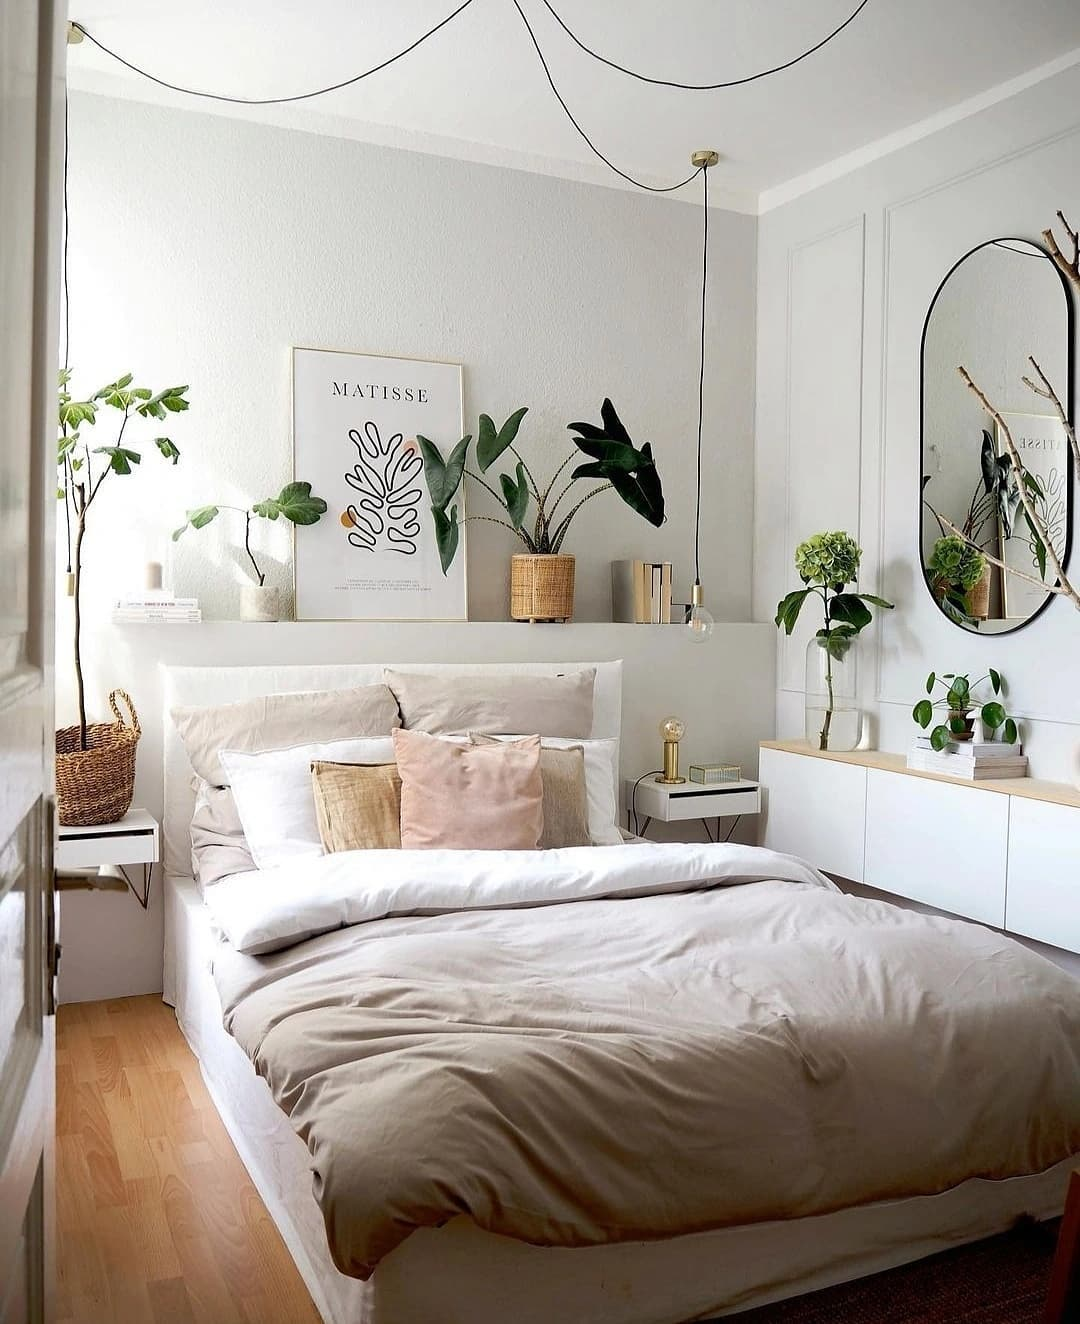 6 Tips to Make Your Small Bedroom Appear Bigger